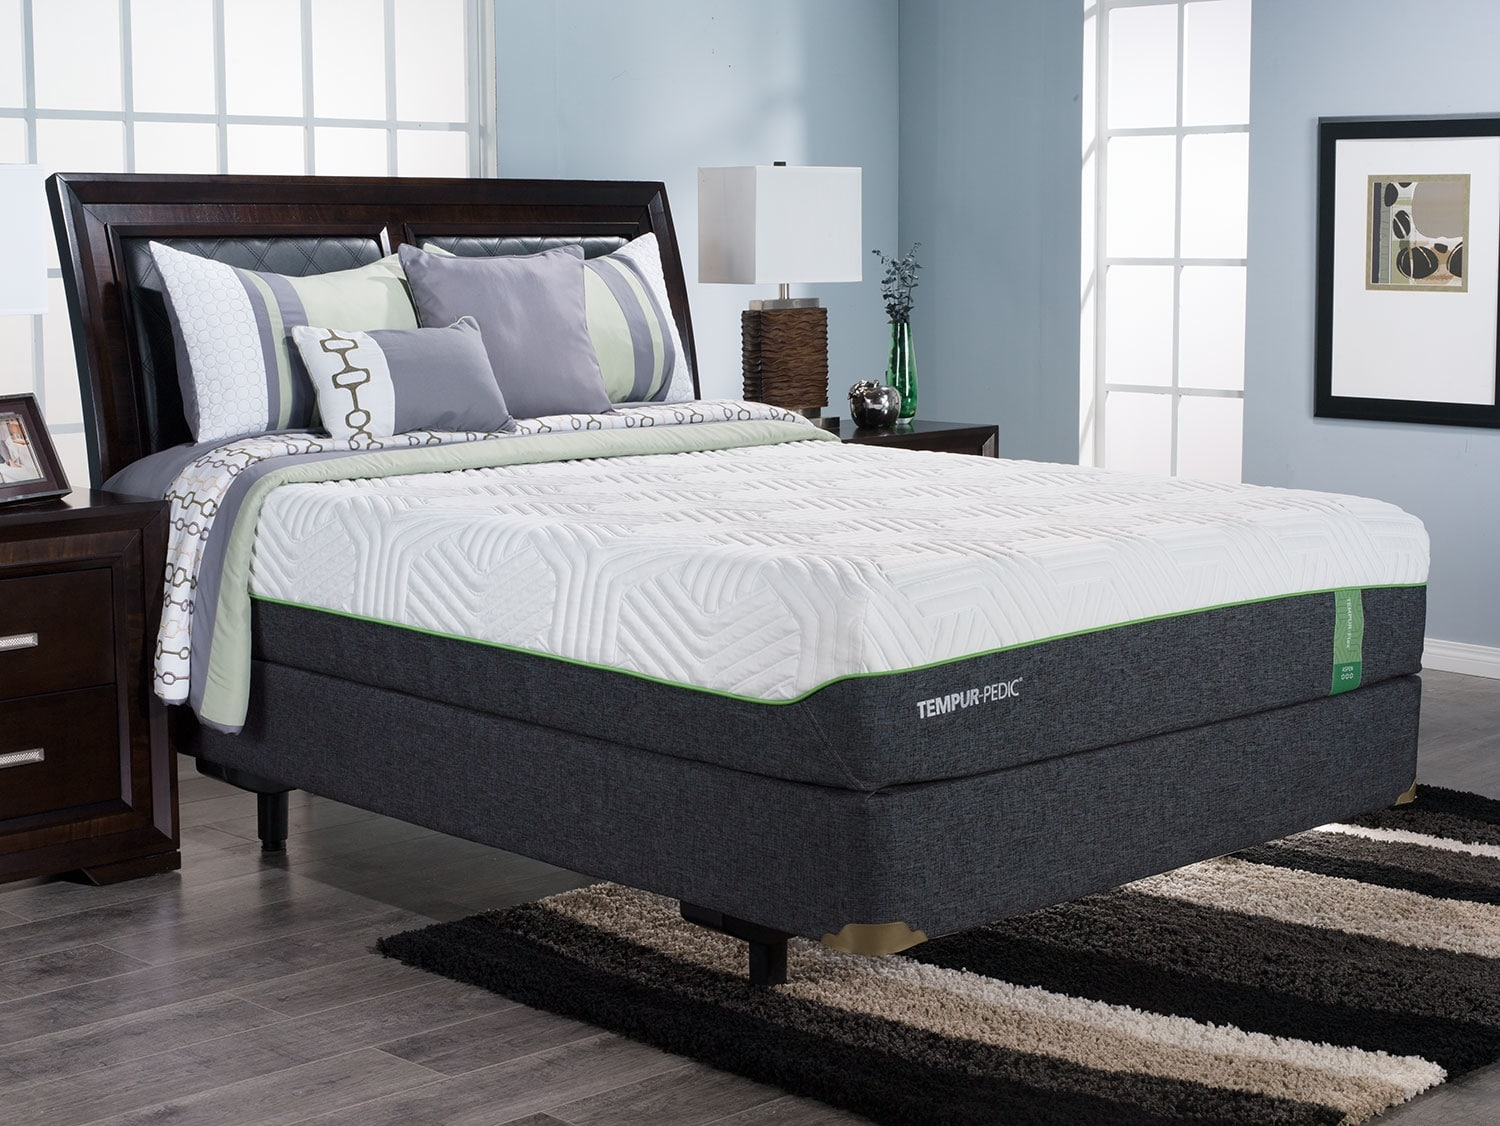 How Much Is A Tempurpedic Bed Used Adjustable Bed